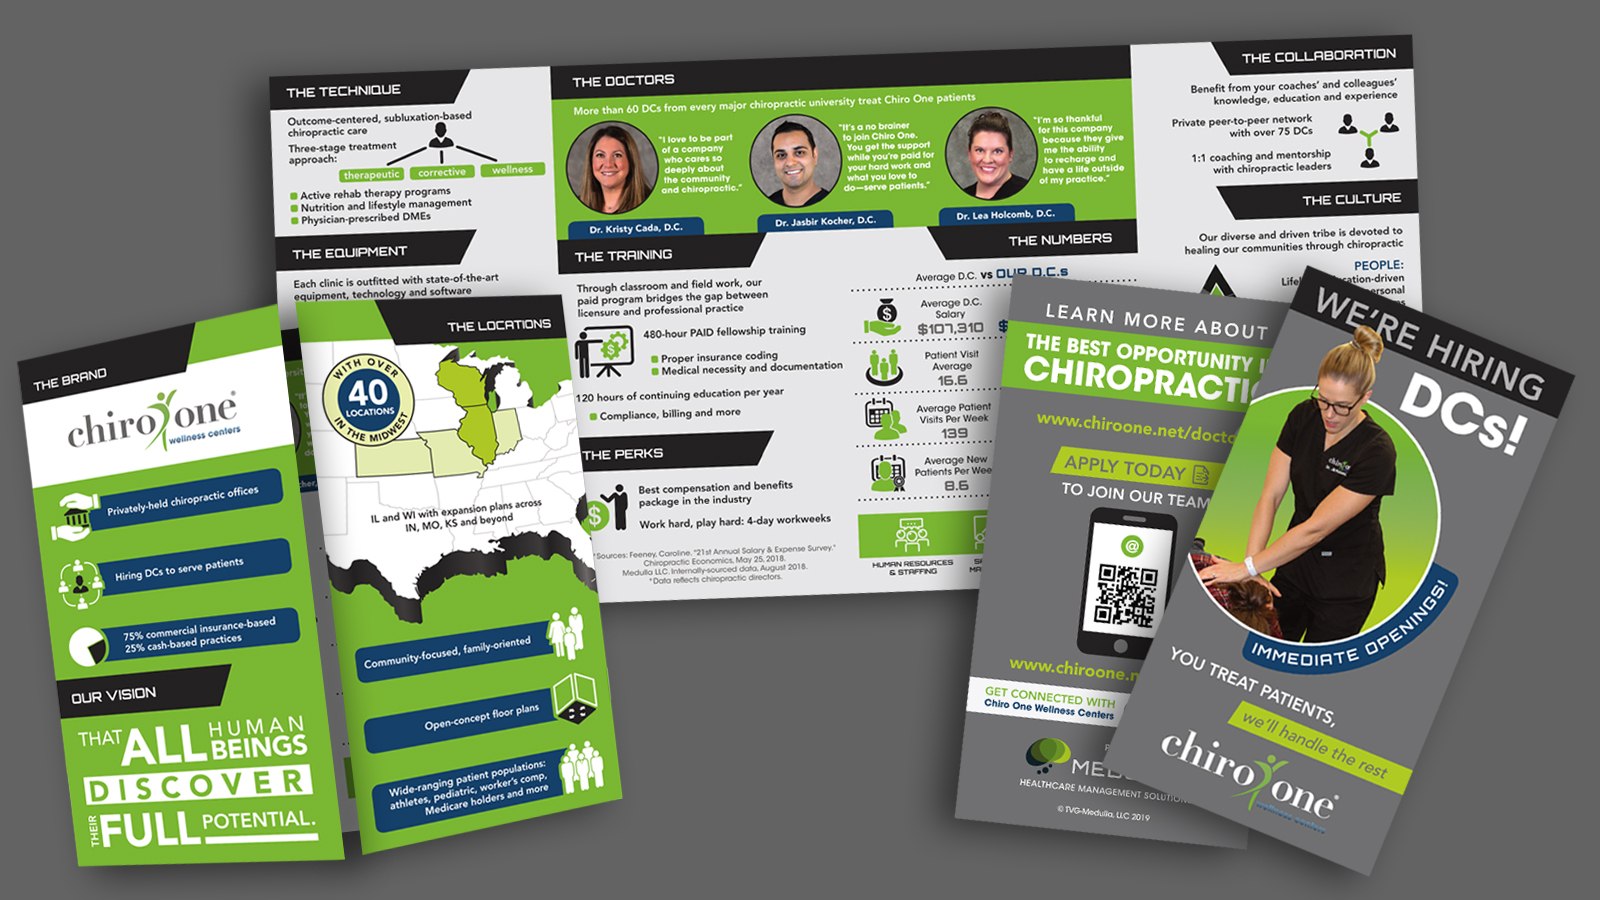 Chiro One Doctor Recruiting Brochure